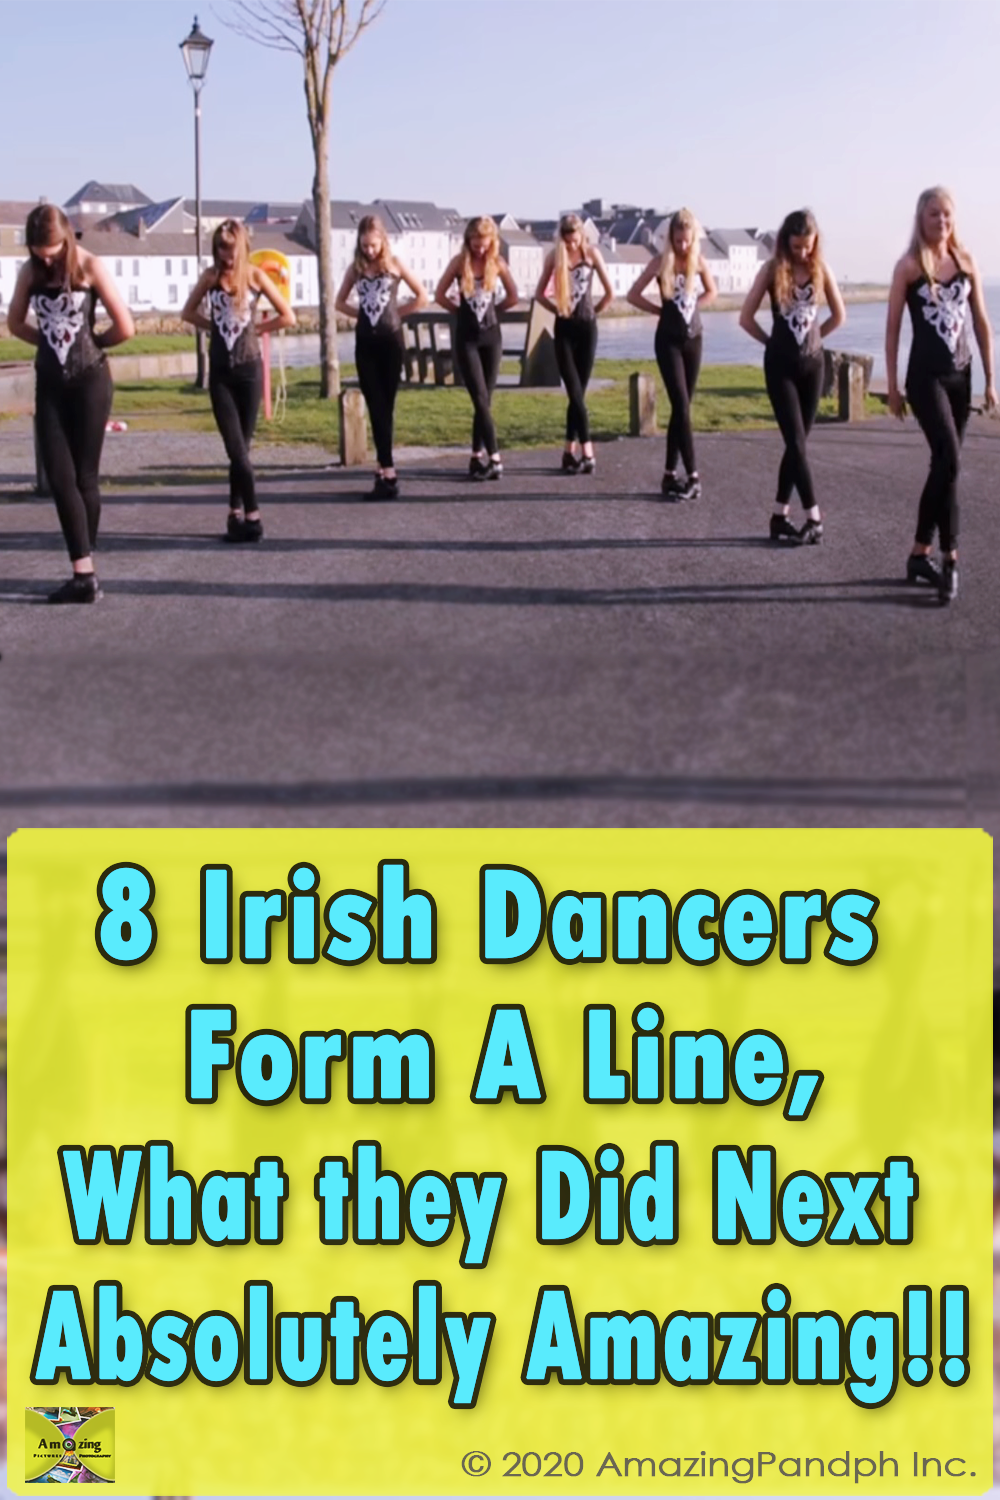 irish dance, fusion fighters, ffvidoefeature, ed sheeran, shape of you, castle on the hill, galway girl, riverdance, lord of the dance, michael flatley,